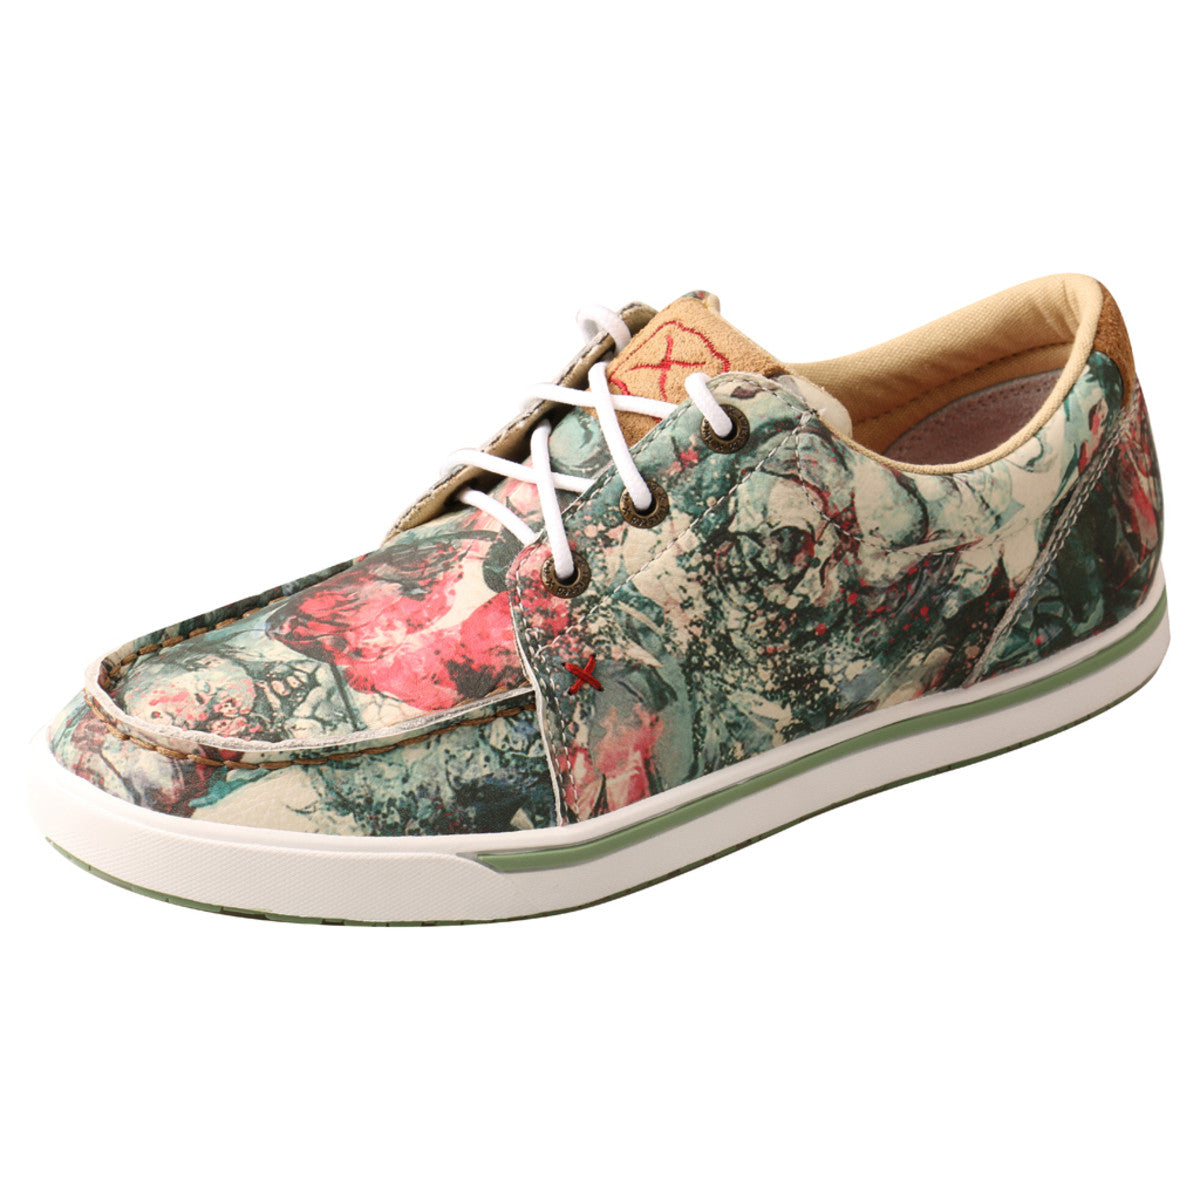 Women's Twisted X Casual Kicks Shoe in Multi from the front